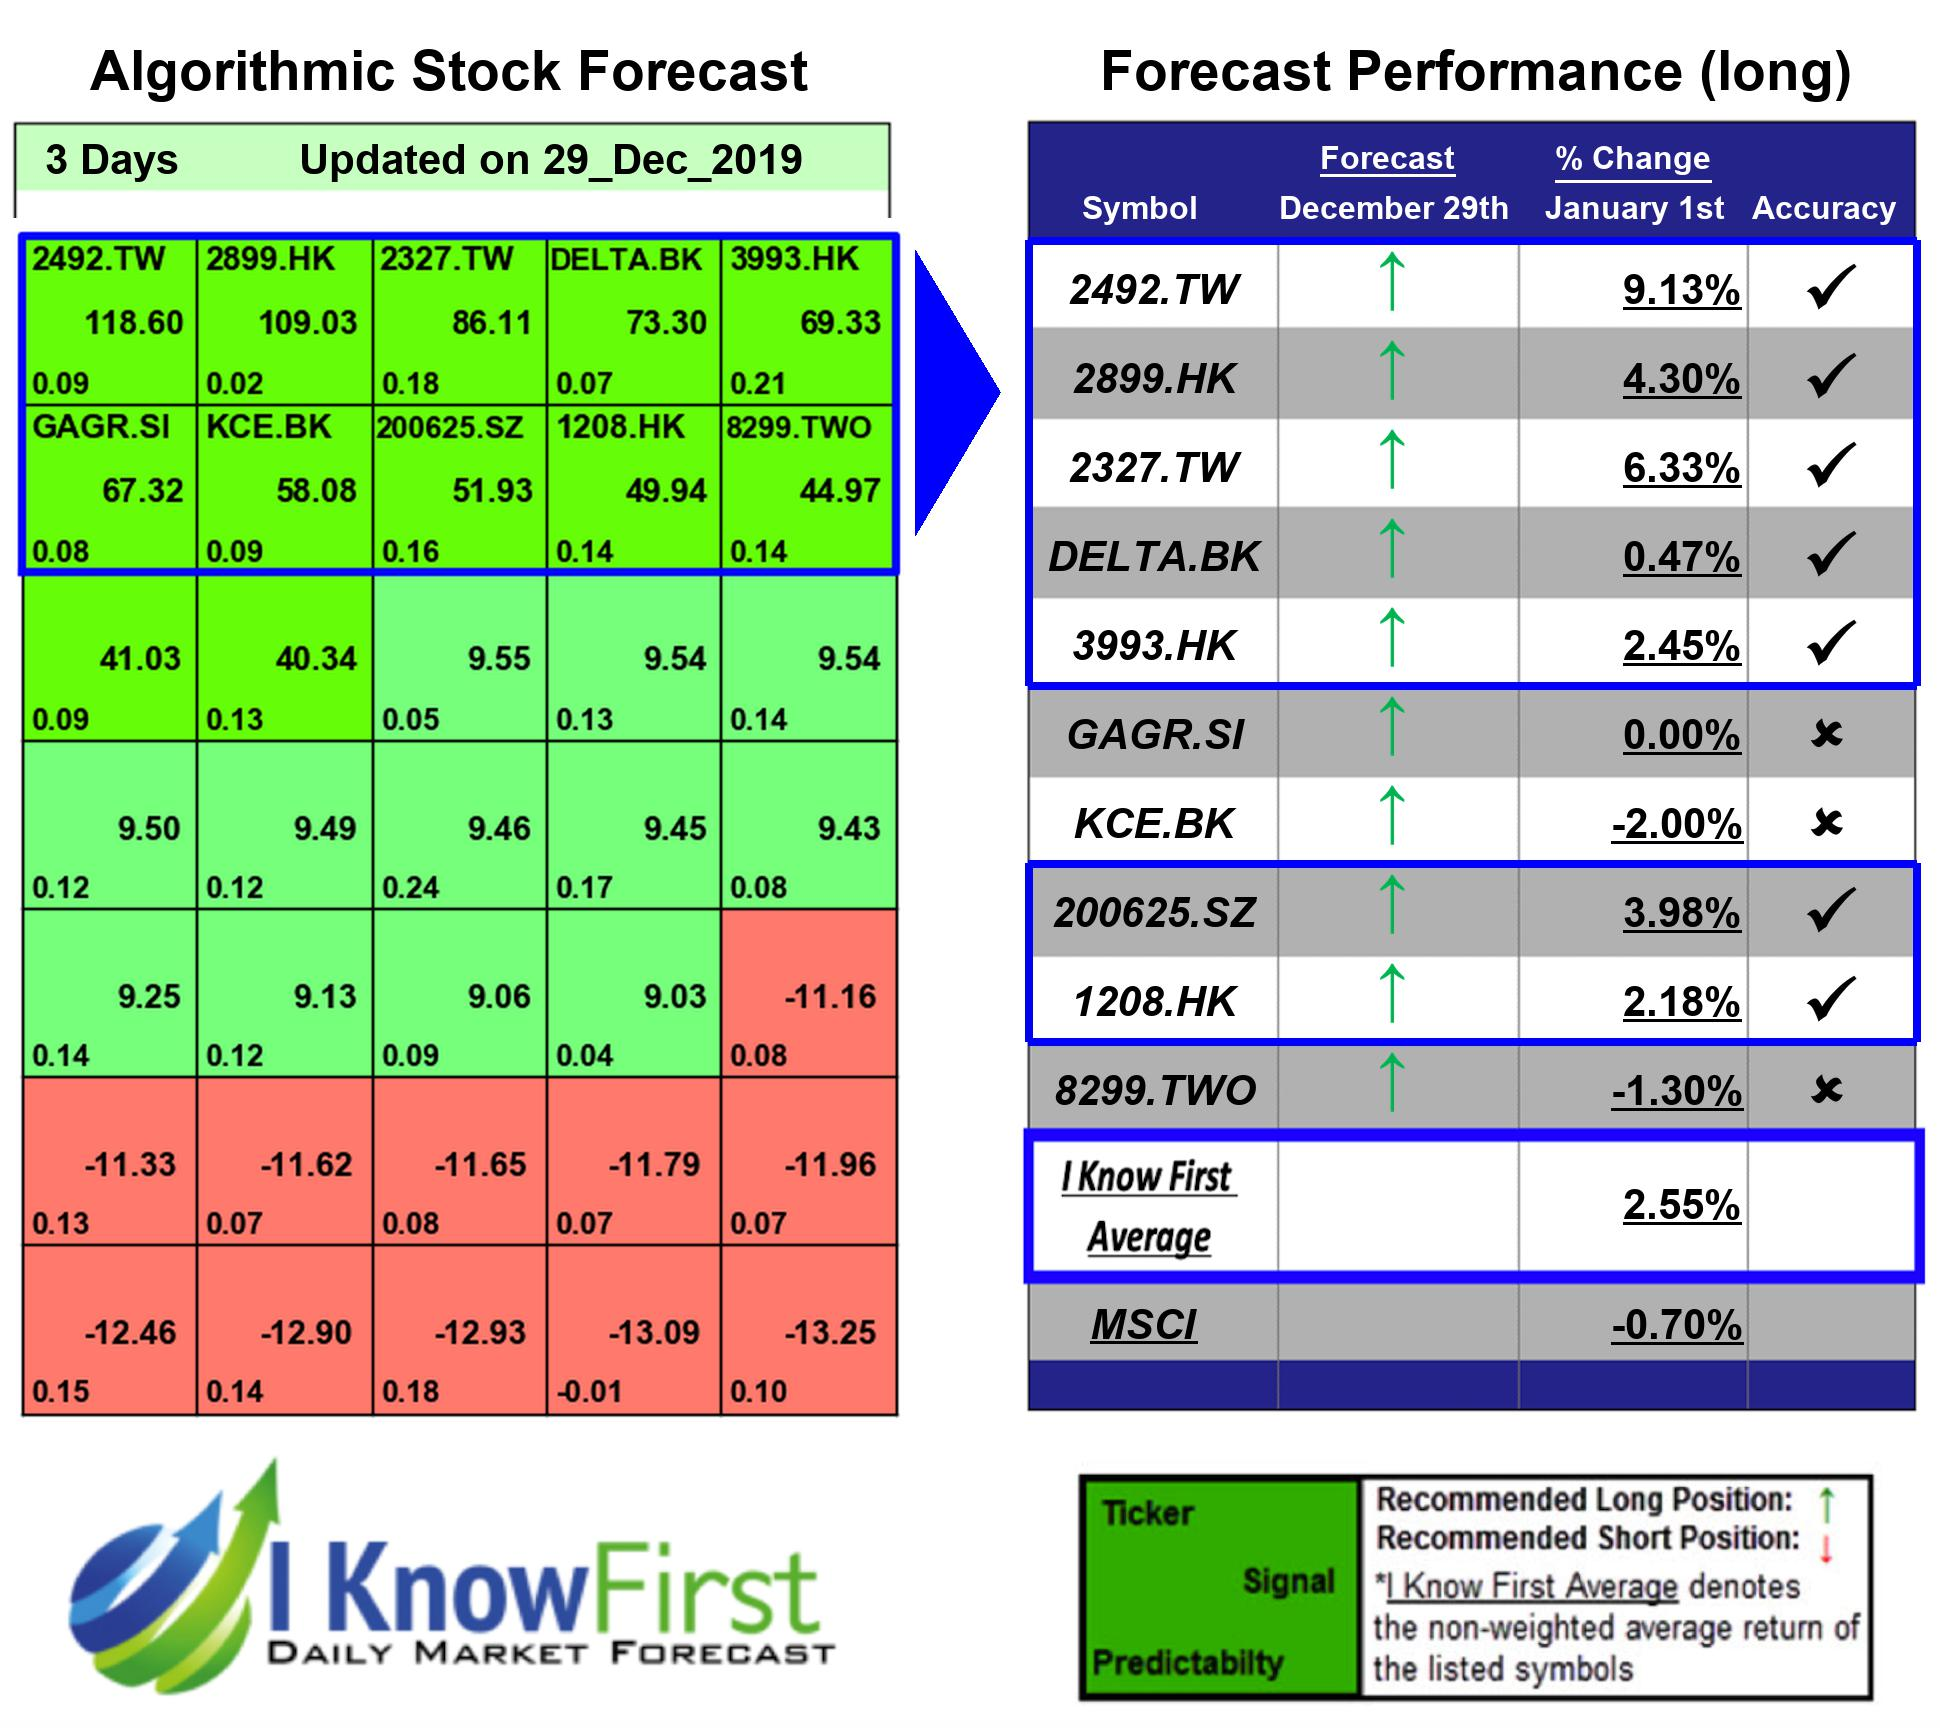 MSCI Stocks Predictions